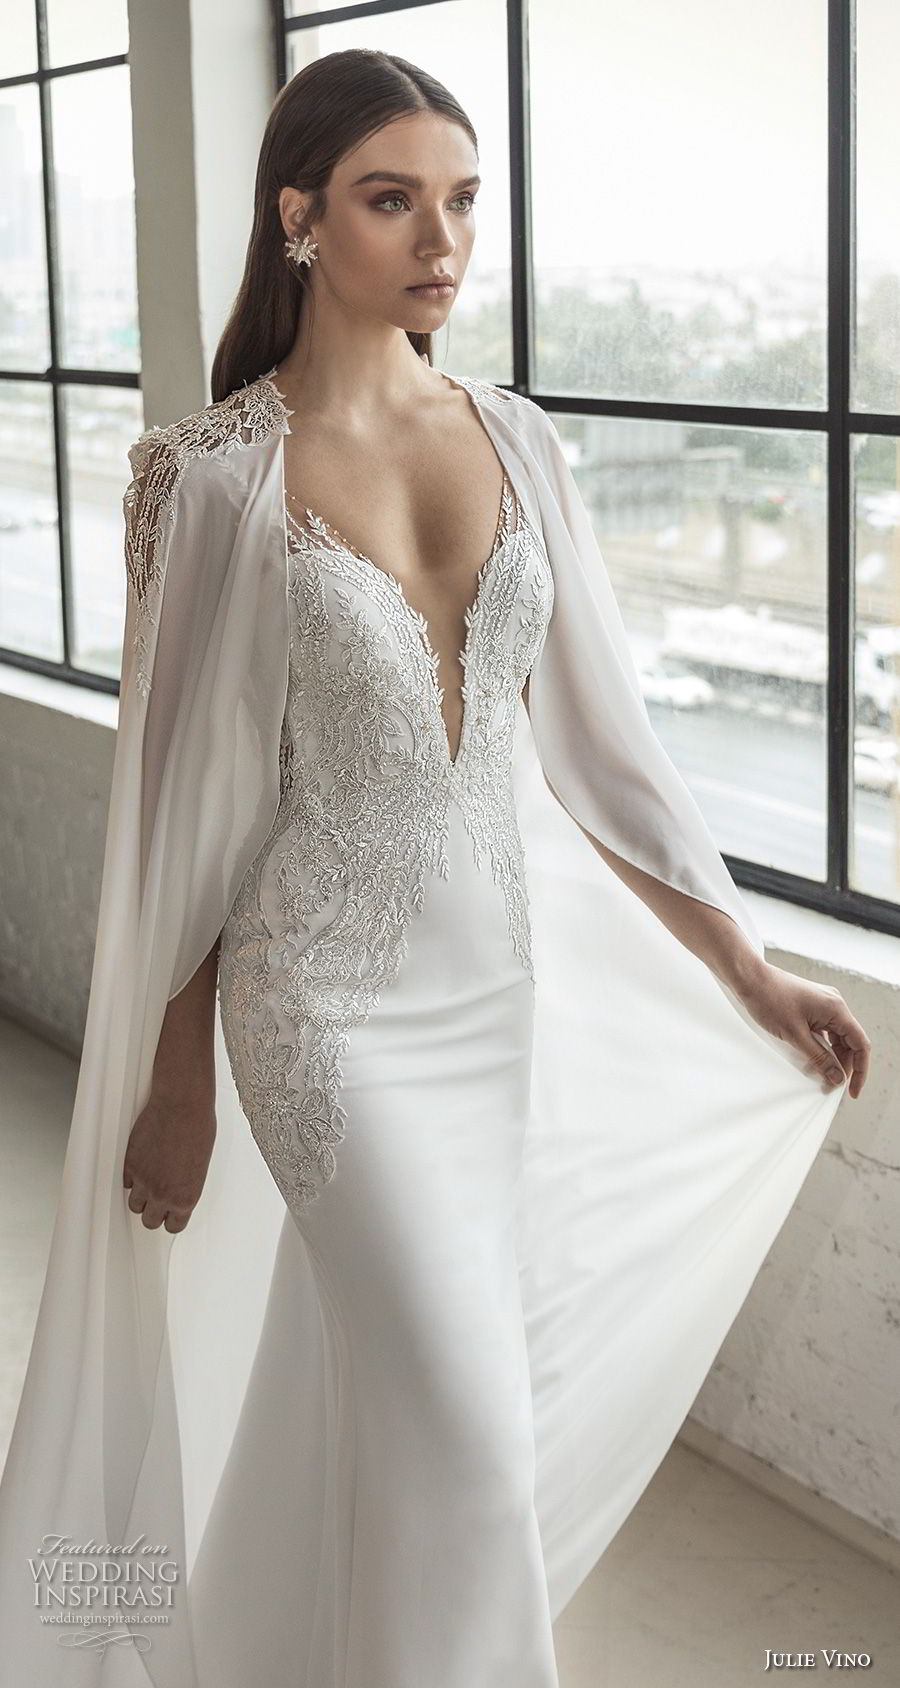 julie vino 2019 romanzo bridal sleeveless deep plunging sweetheart neckline heavily embellished bodice romantic fit and flare wedding dress with cape low v back chapel train (8) zv